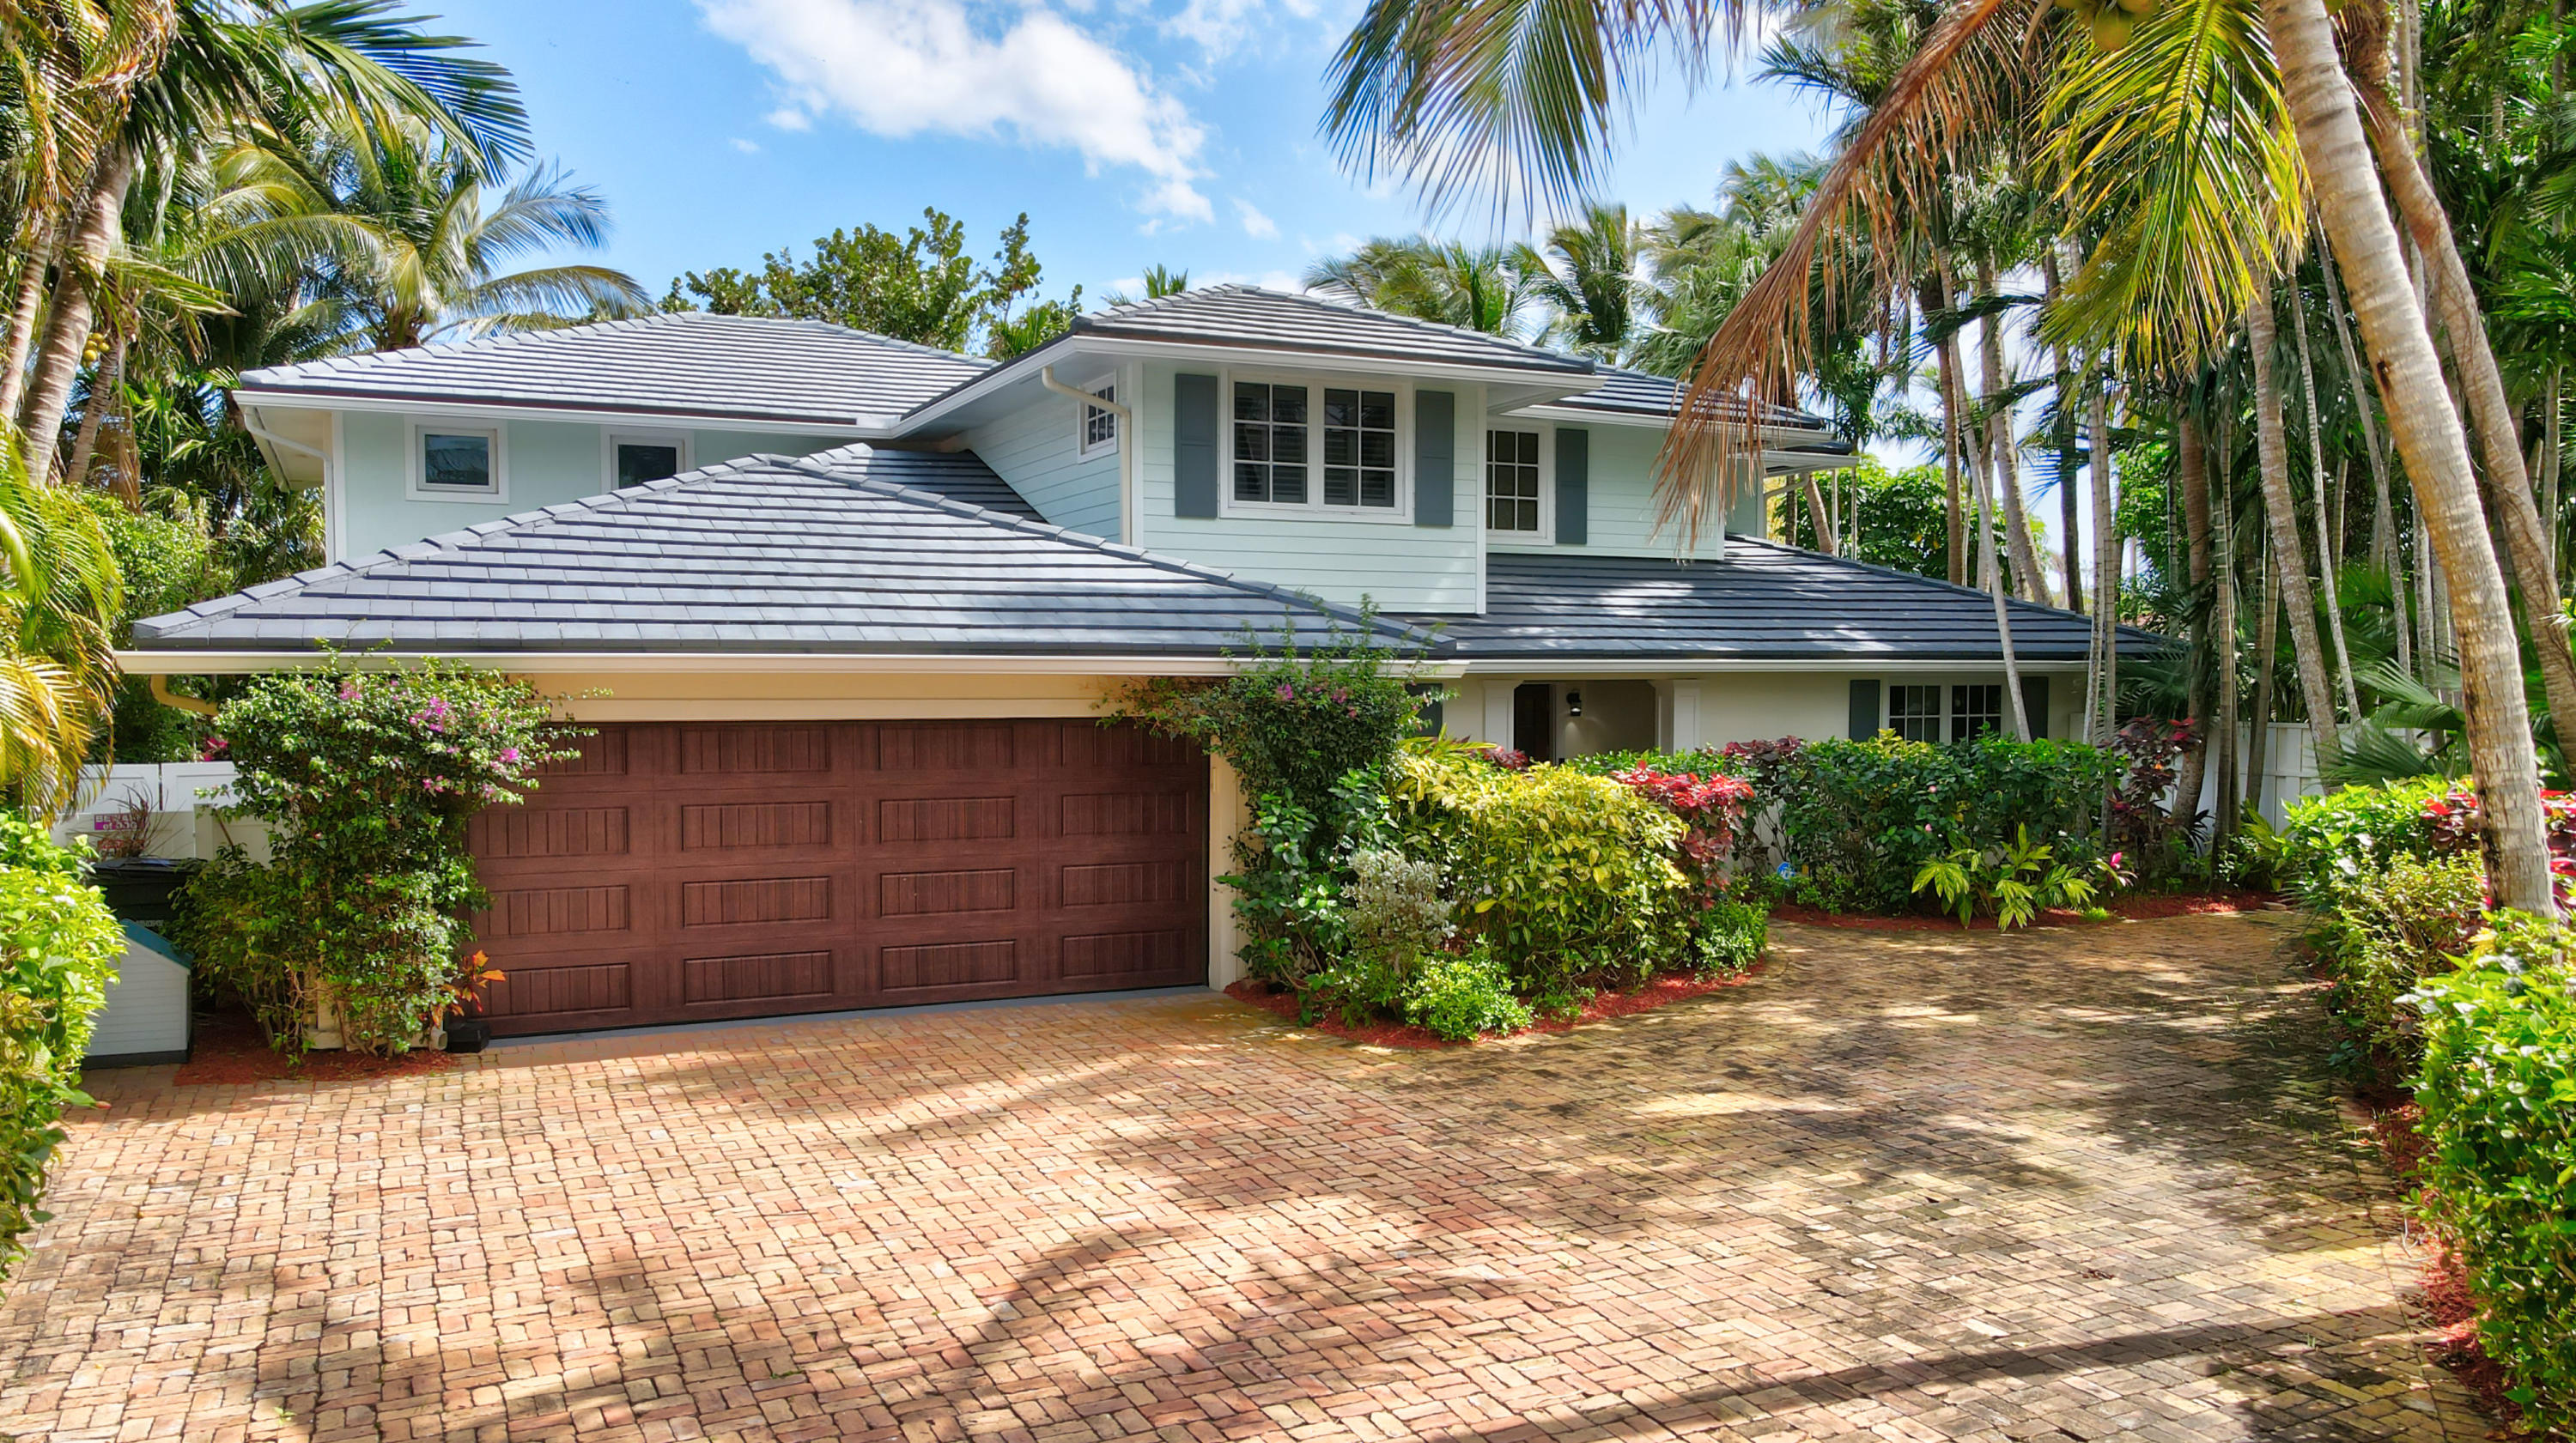 Home for sale in SUN AND SURF CLUB COMMUNITY Boca Raton Florida